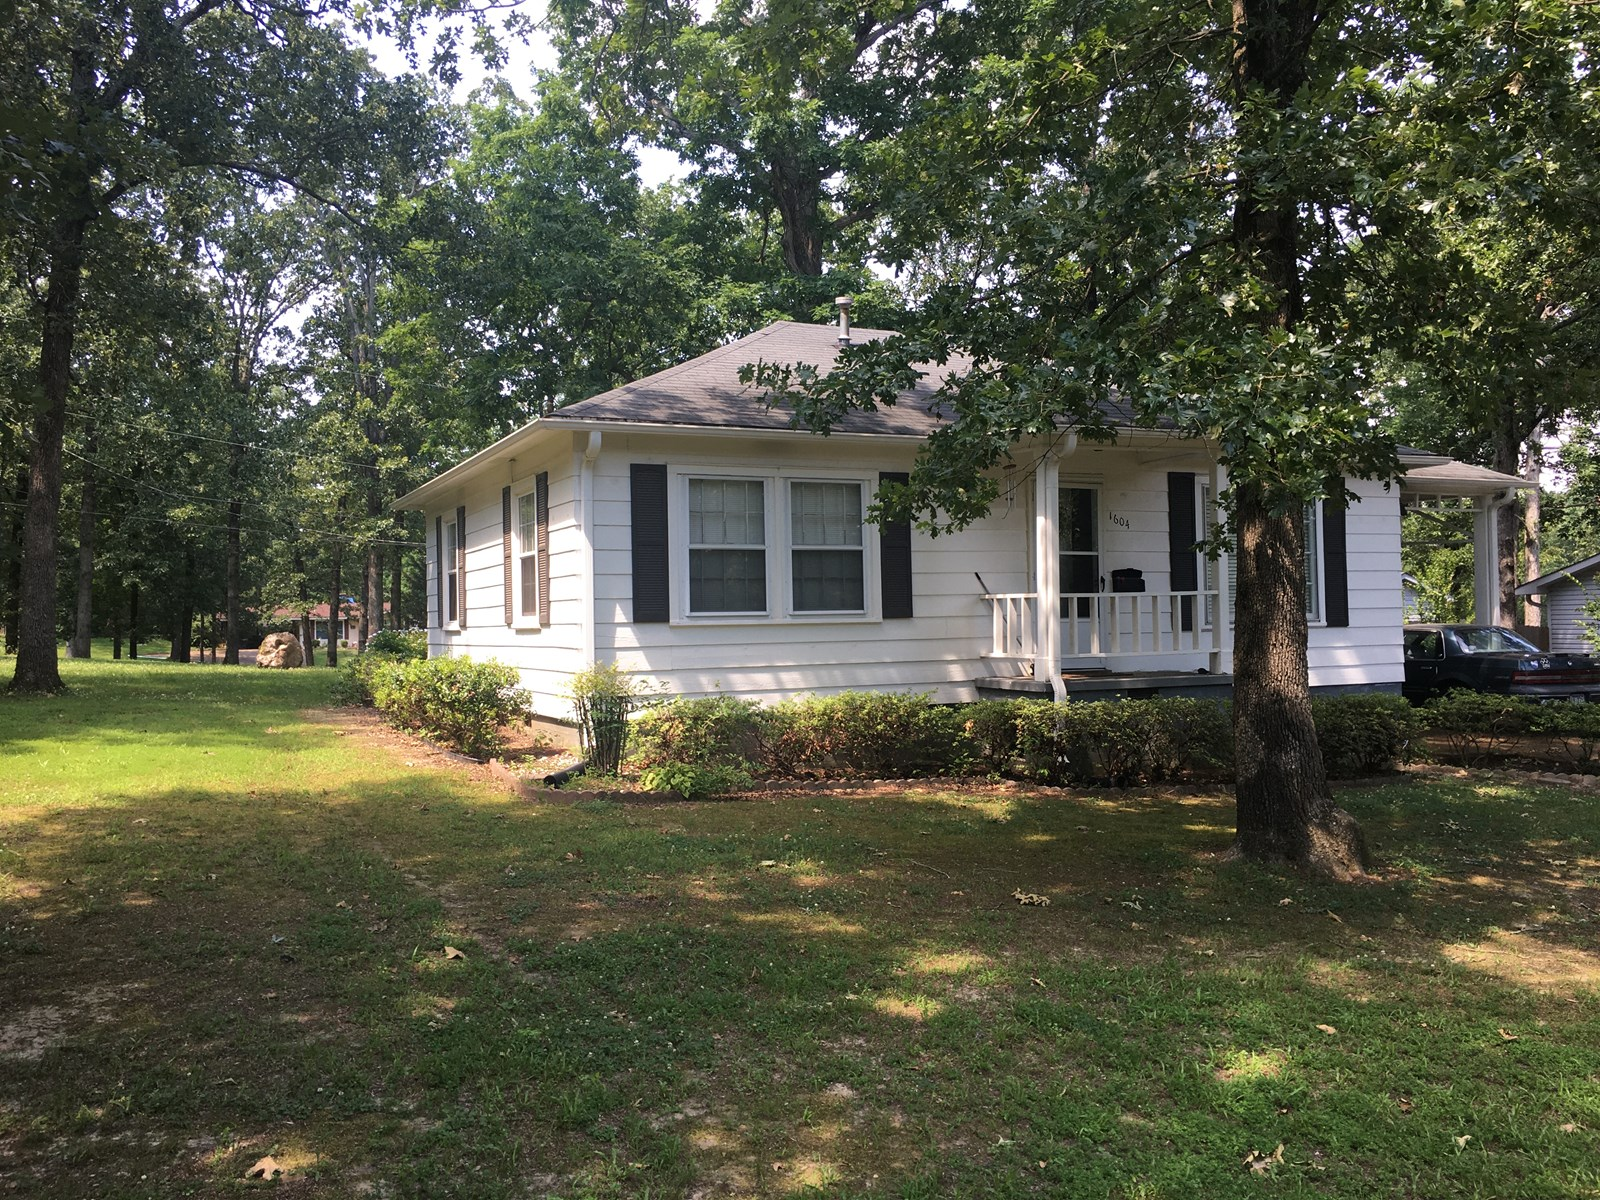 Home in Town for Sale, 2 BR 1 BA CHA Pocahontas, AR top area